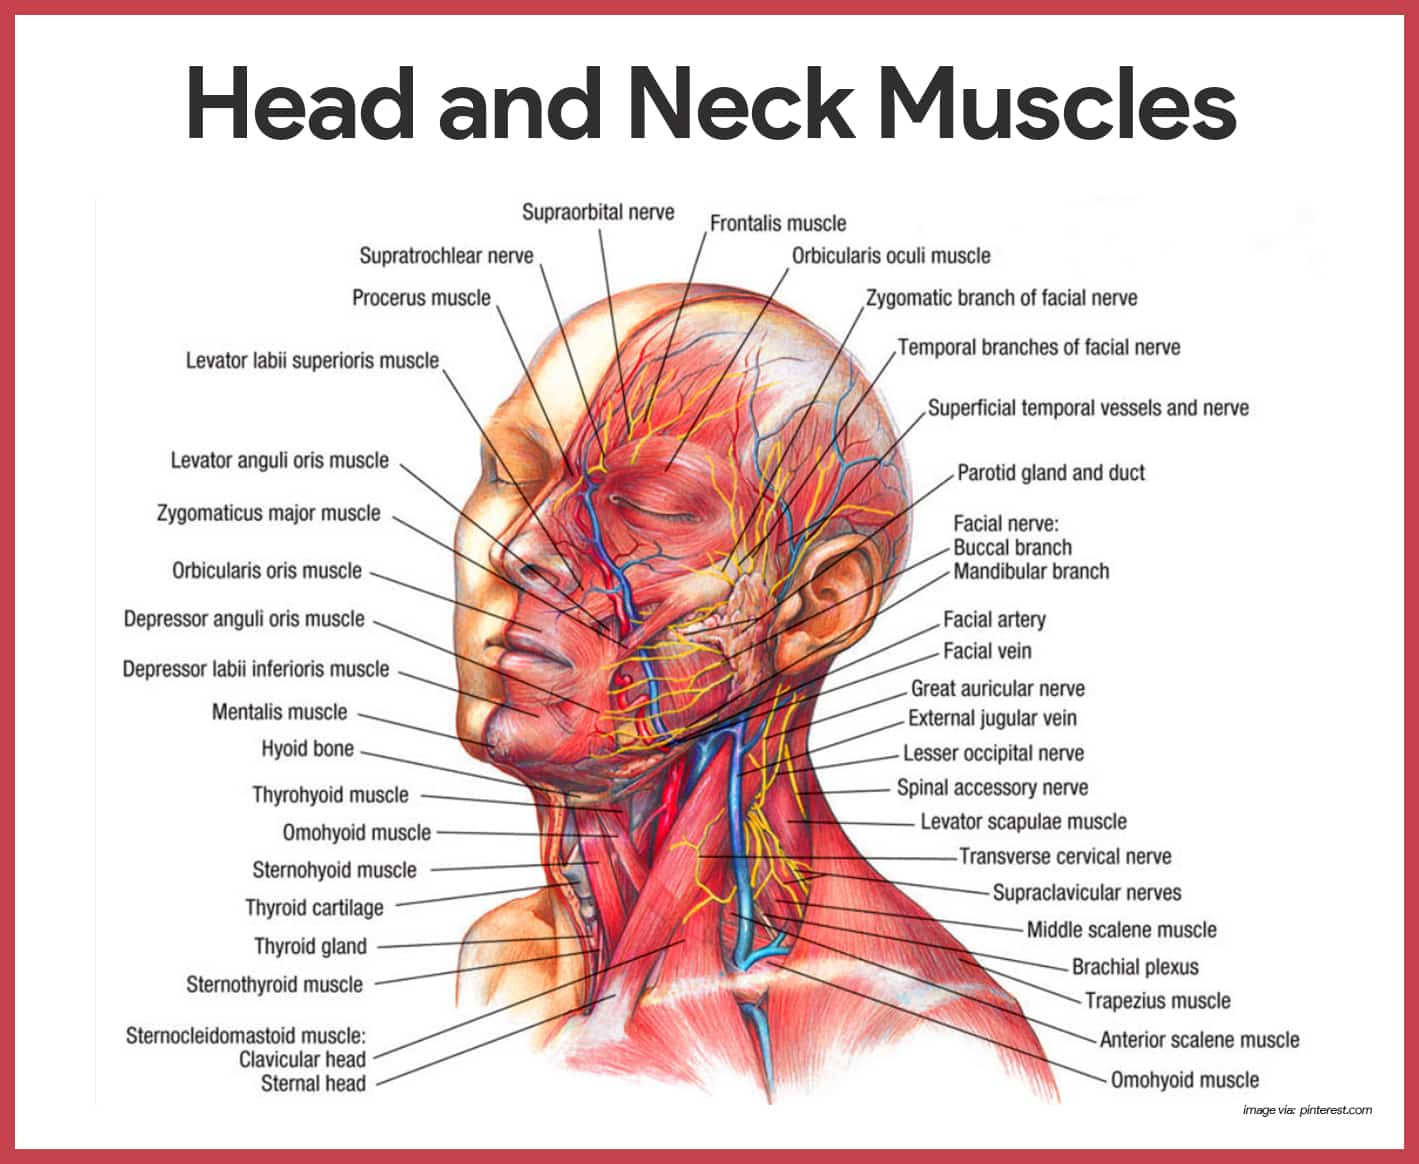 Head and Neck Muscles- Muscular System